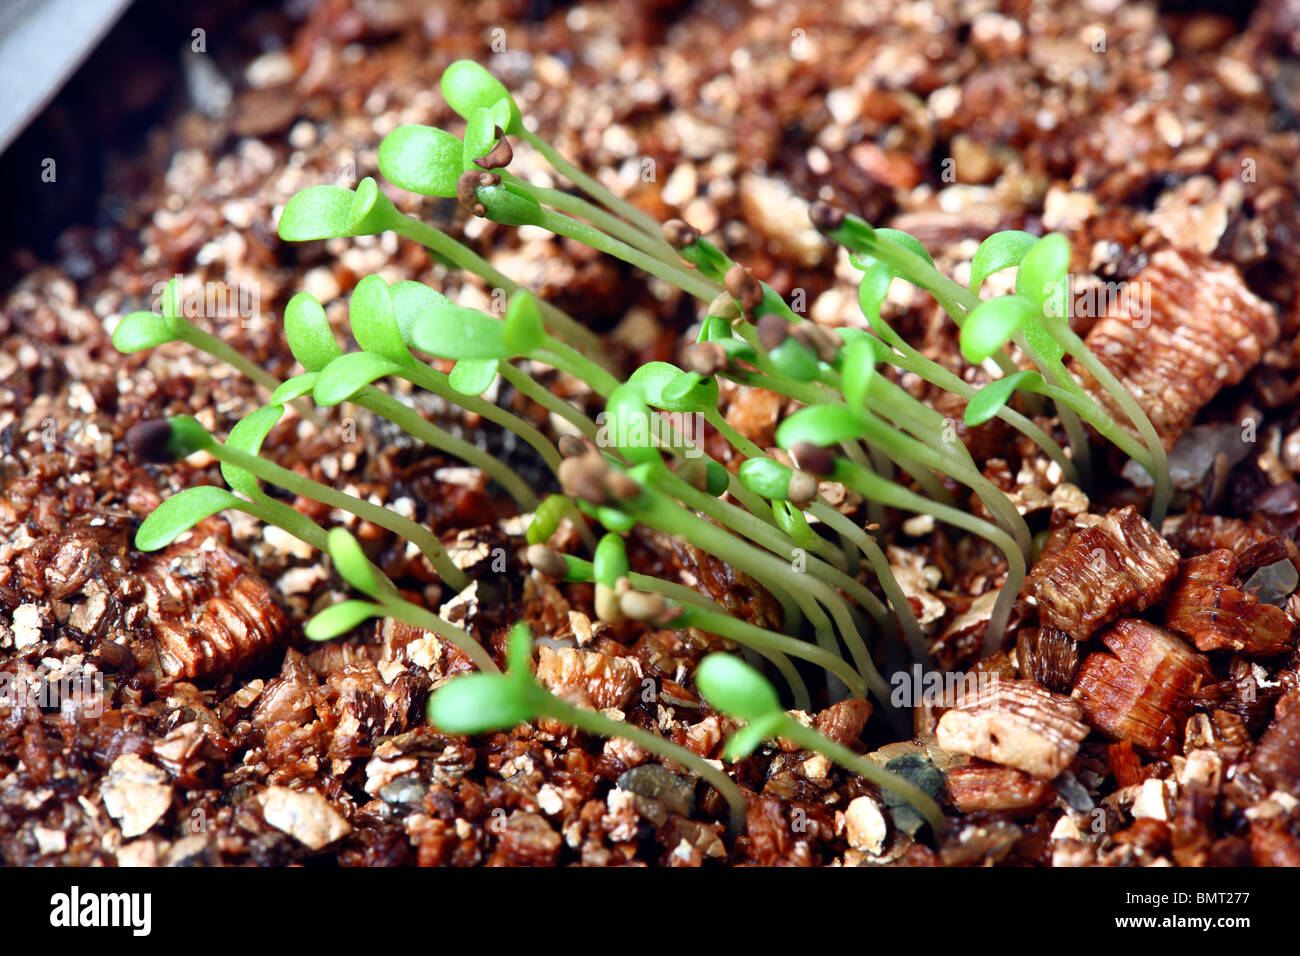 germ bud of clover, plants at a hotbed, agars Stock Photo